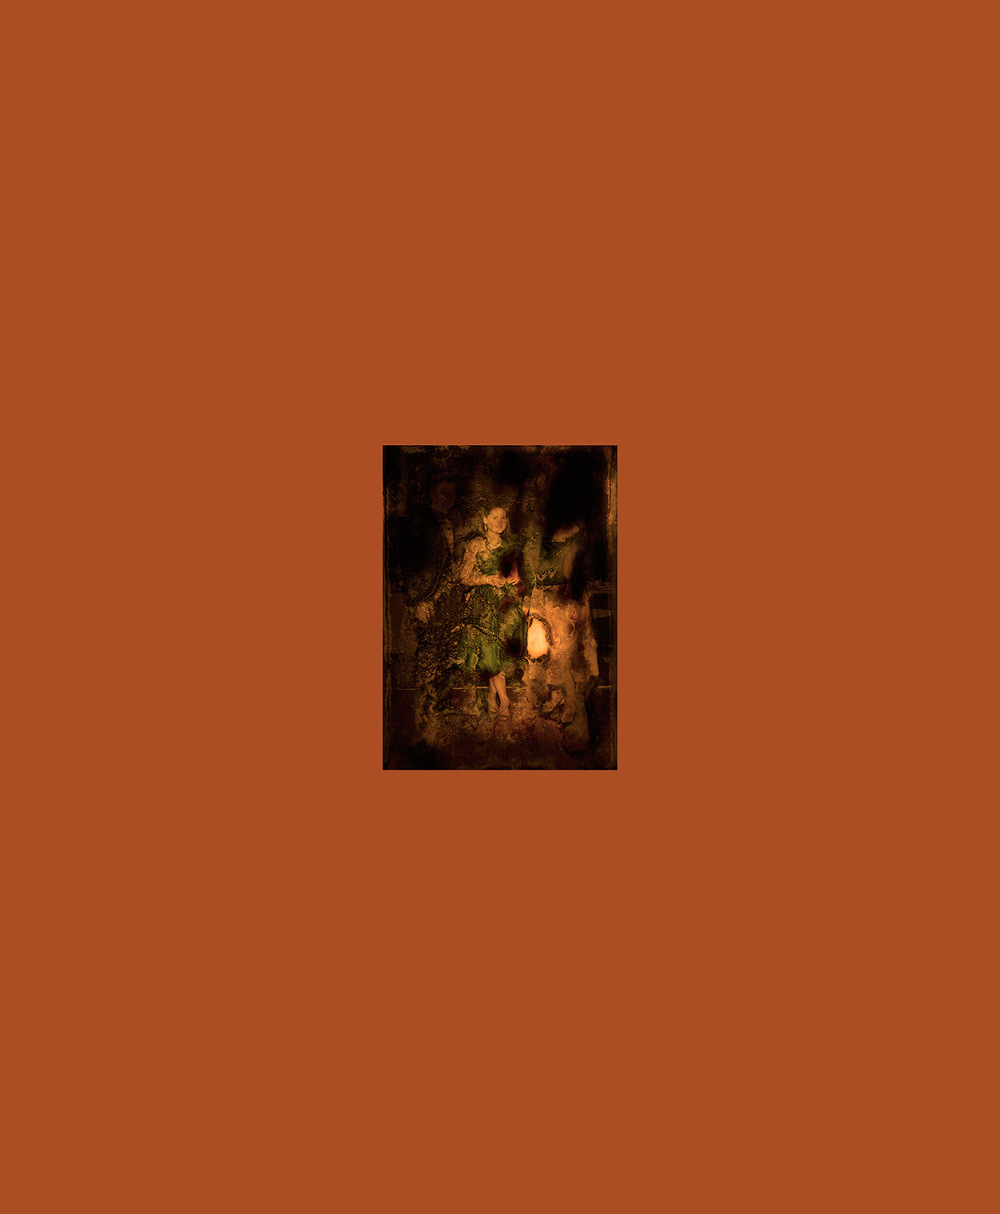 Anonymous (flooded album); burnt sienna